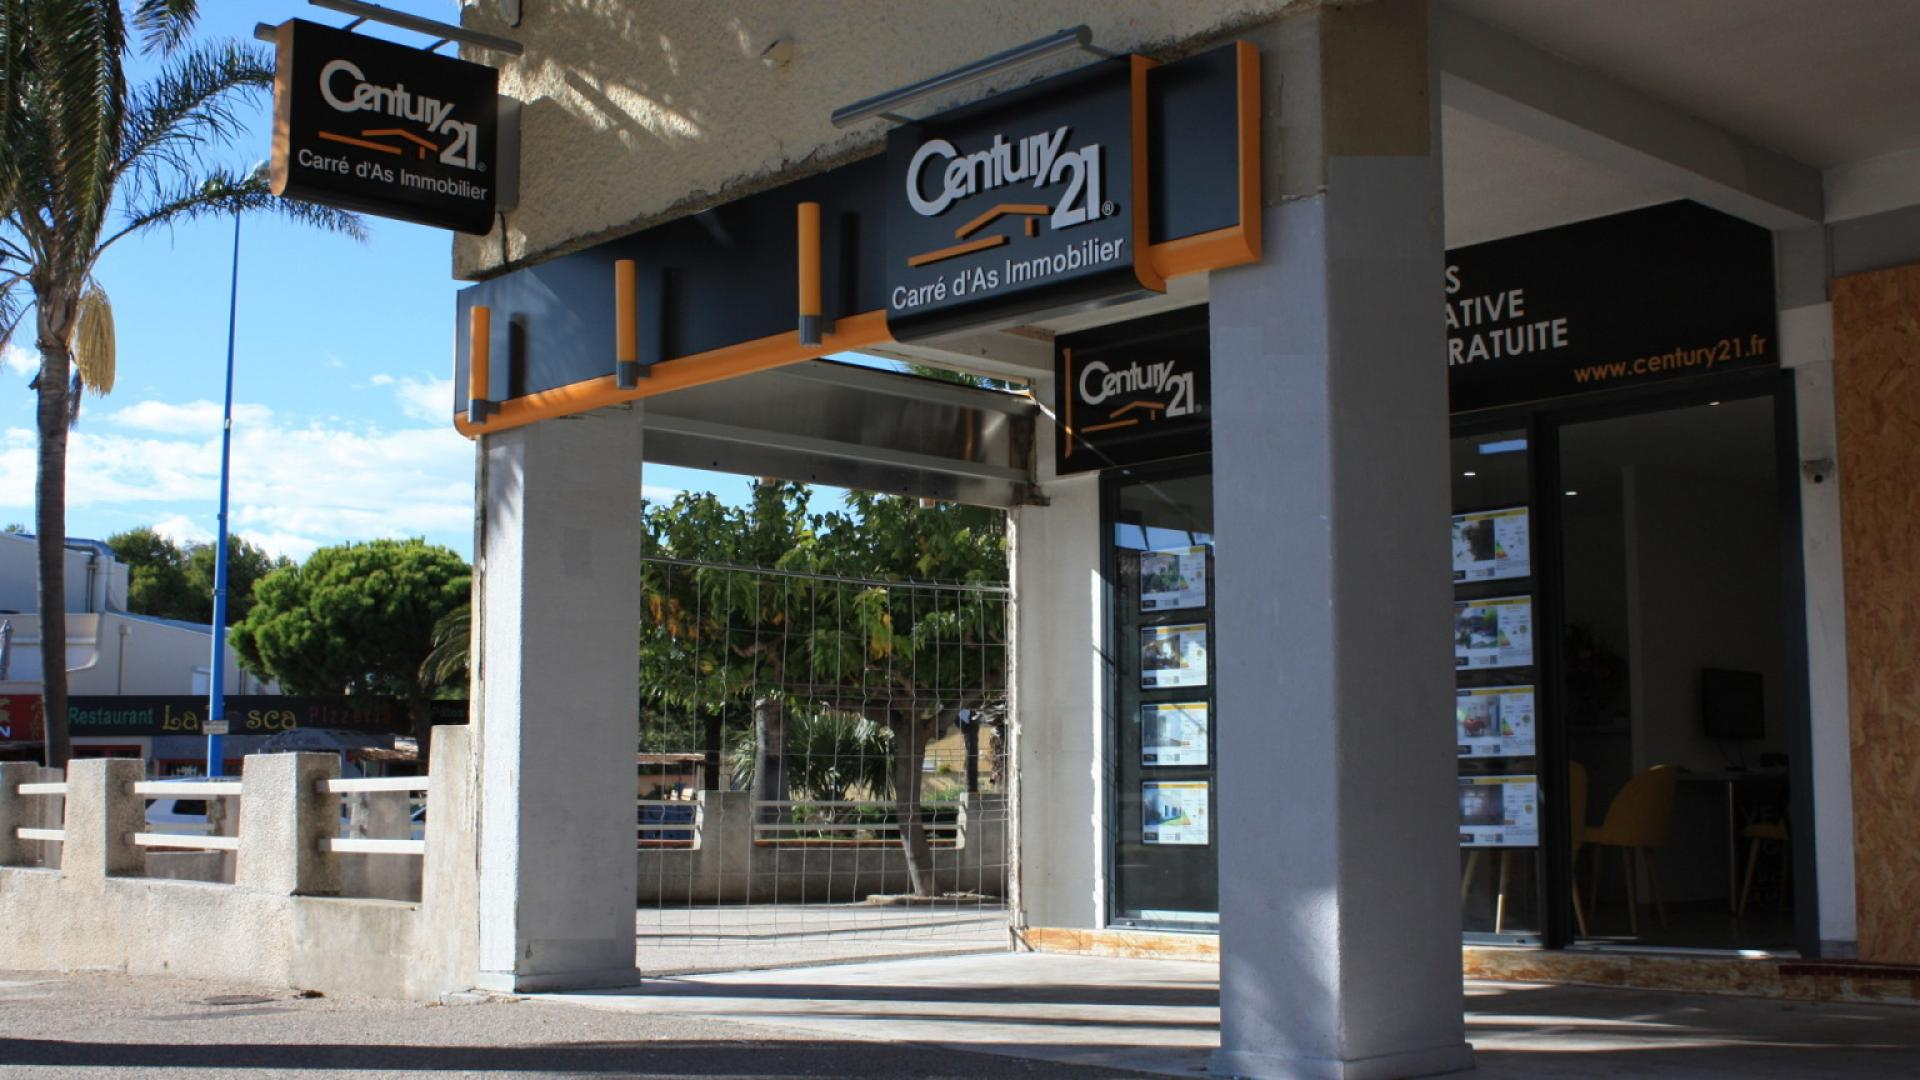 CENTURY 21 CARRE D'AS IMMOBILIER